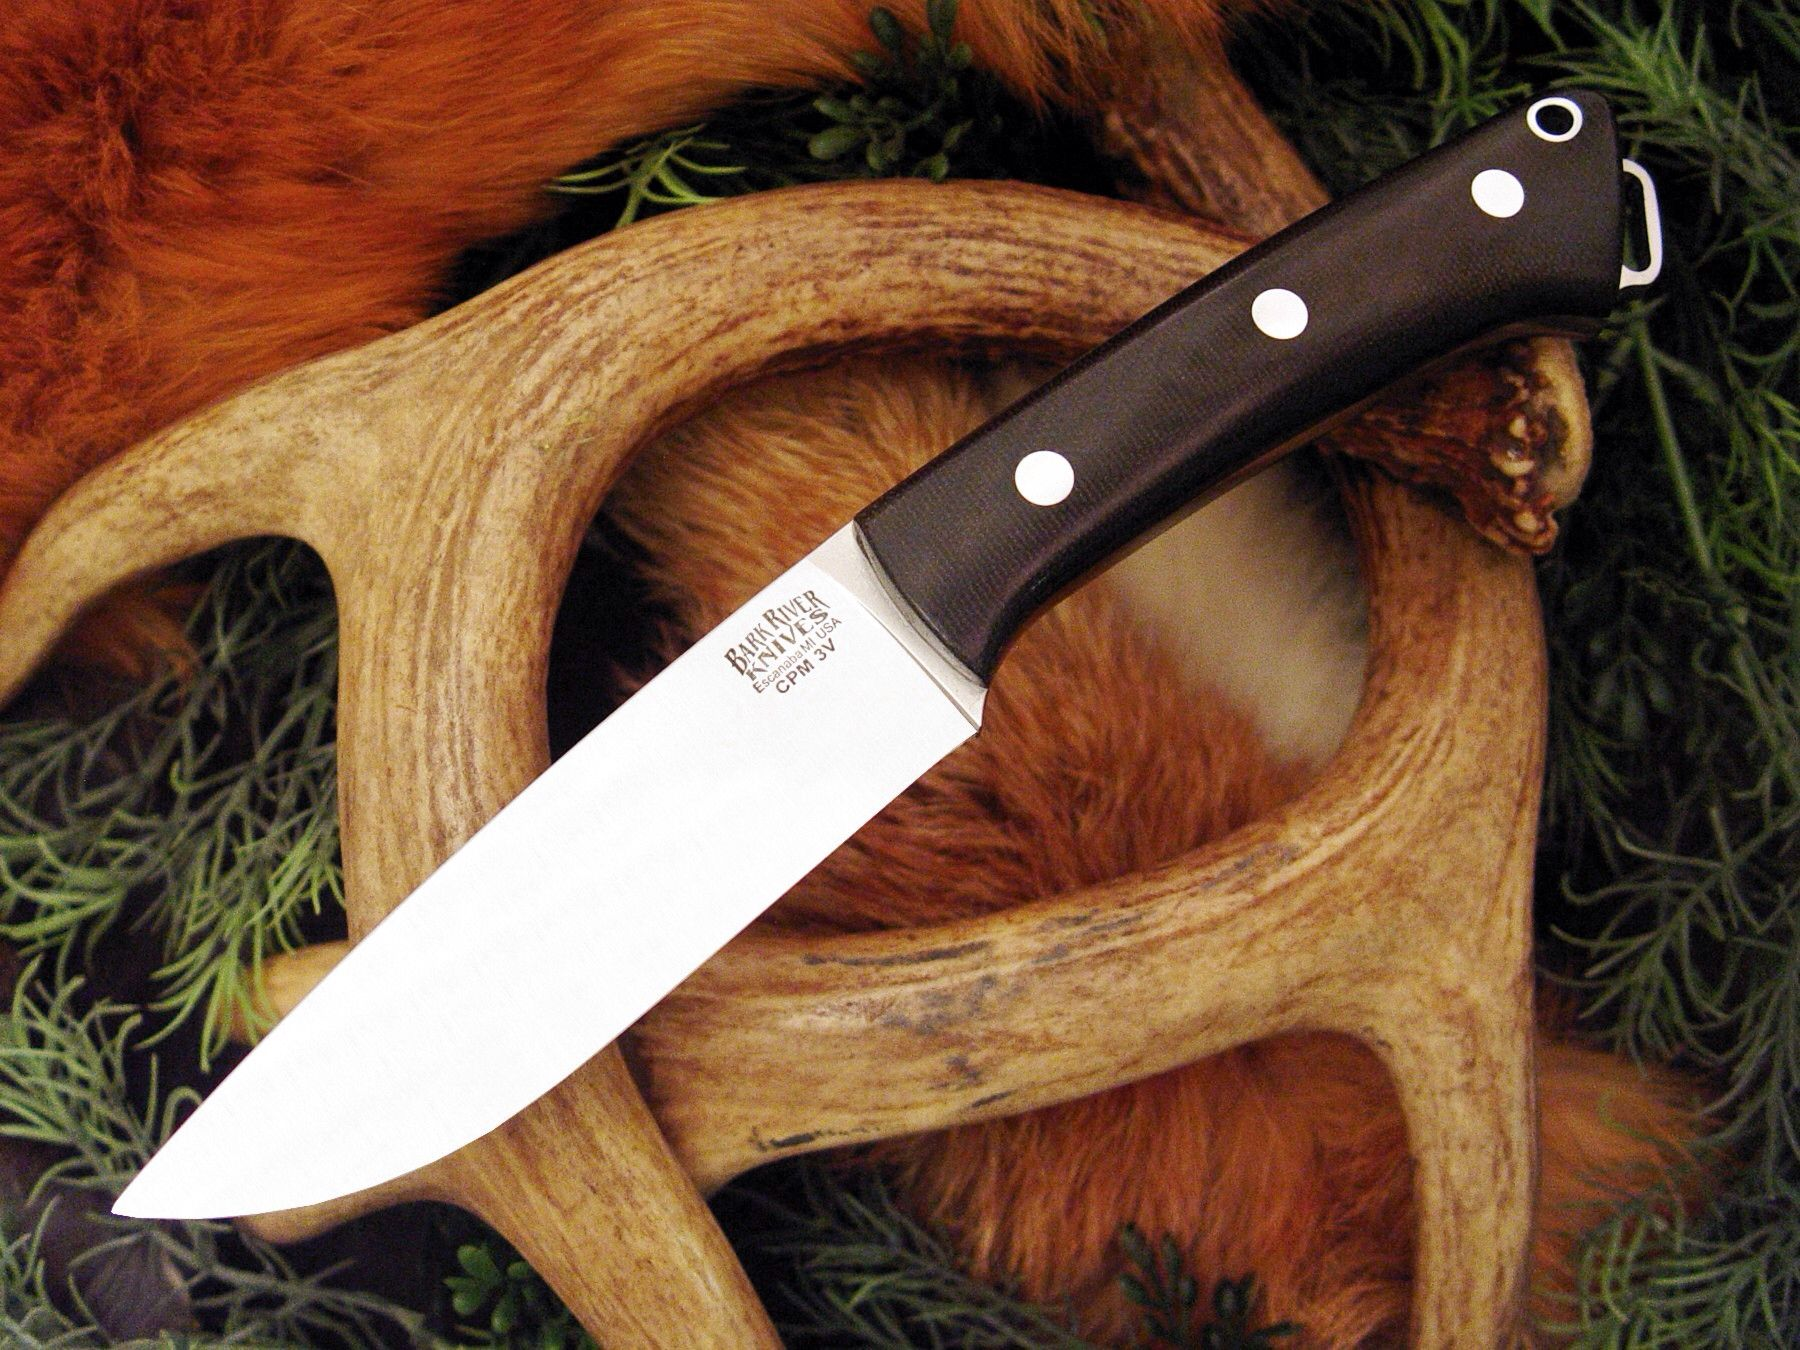 bark river knives beautiful knife design pinterest knives